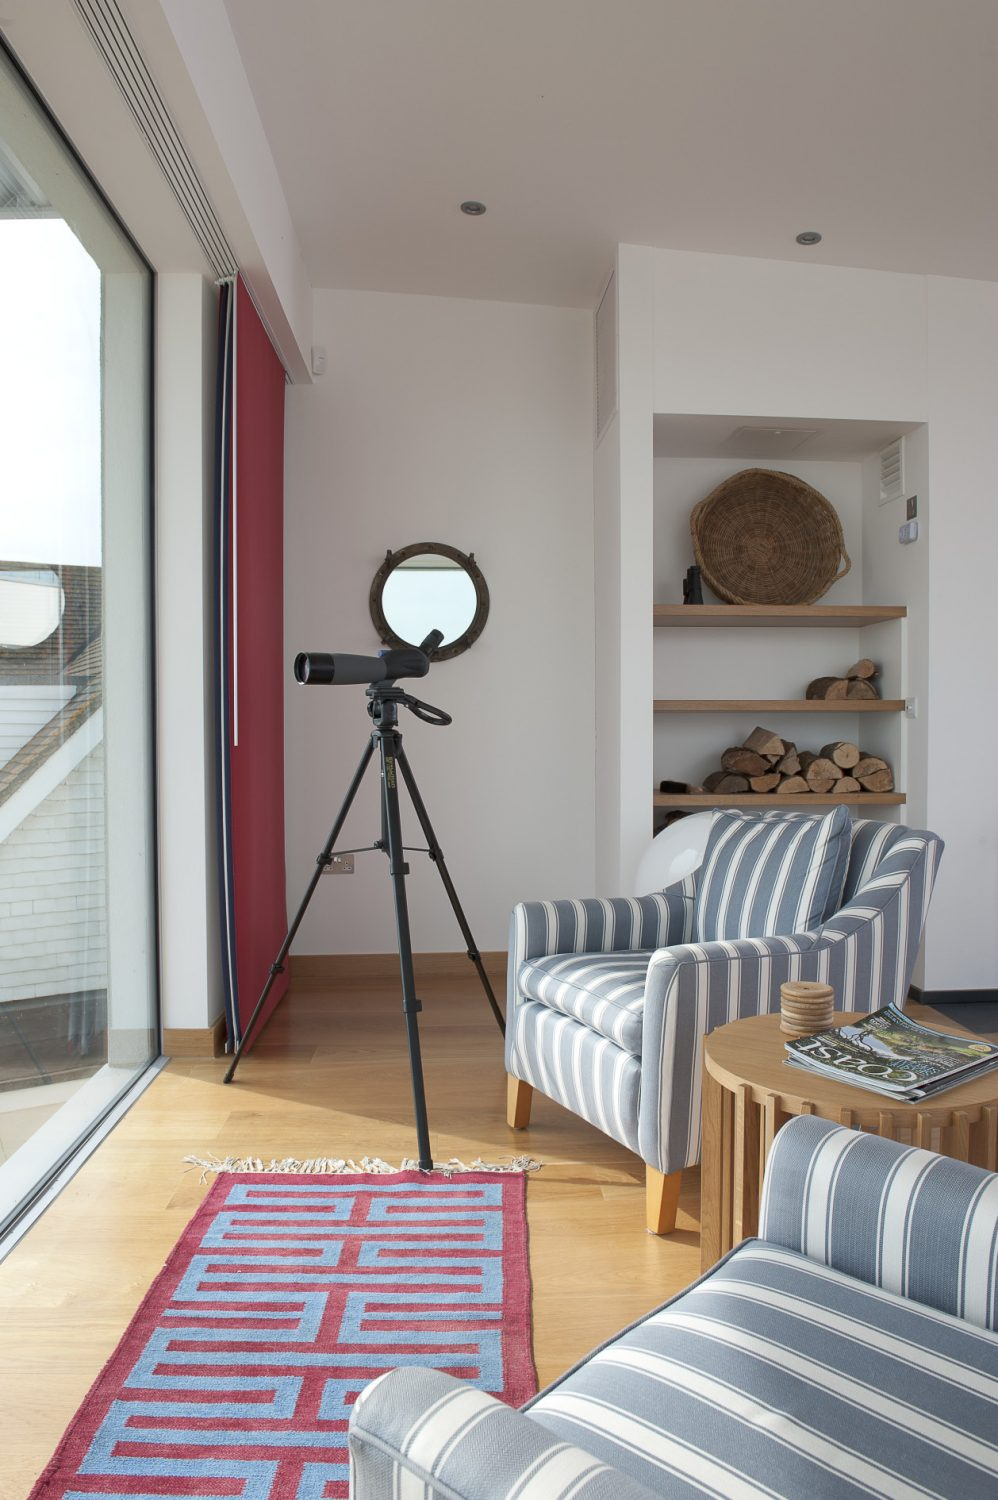 Two striped armchairs have been perfectly placed next to the windows with a telescope within reach